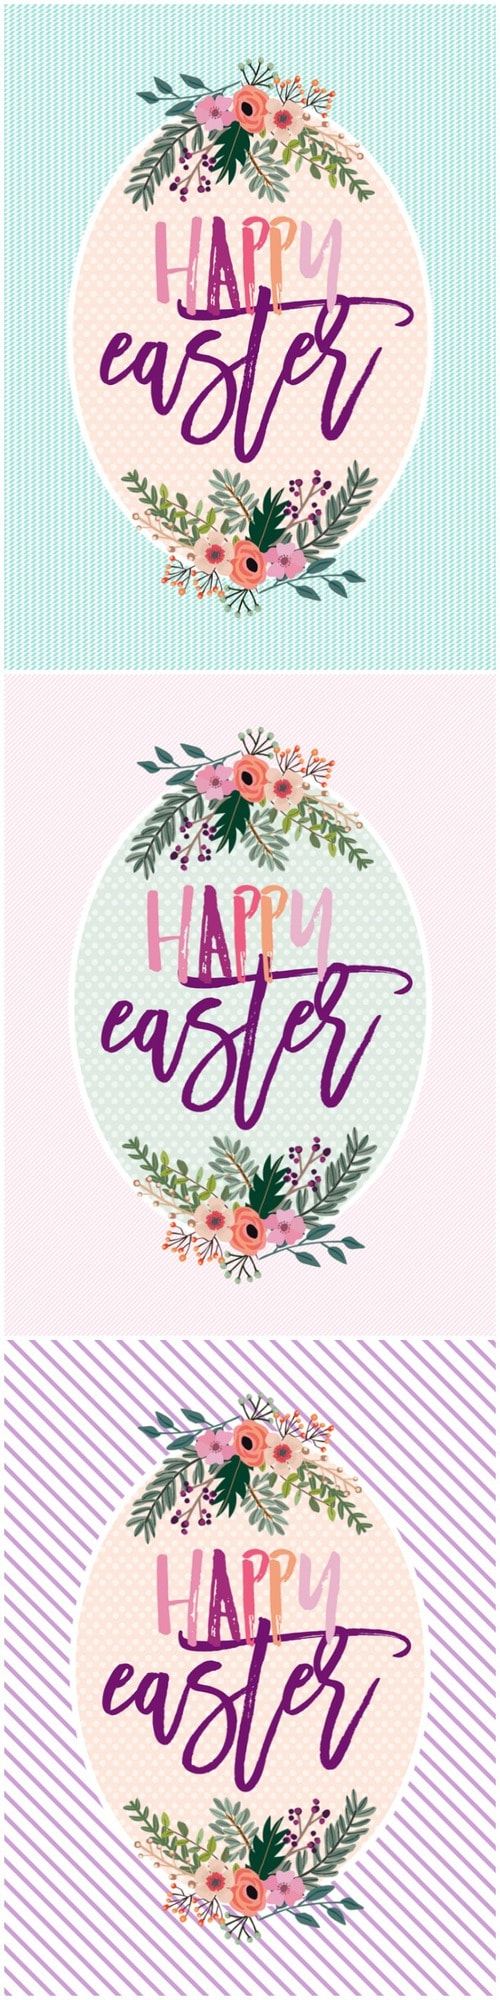 FREE Happy Easter Printables - available to download in 3 colors!